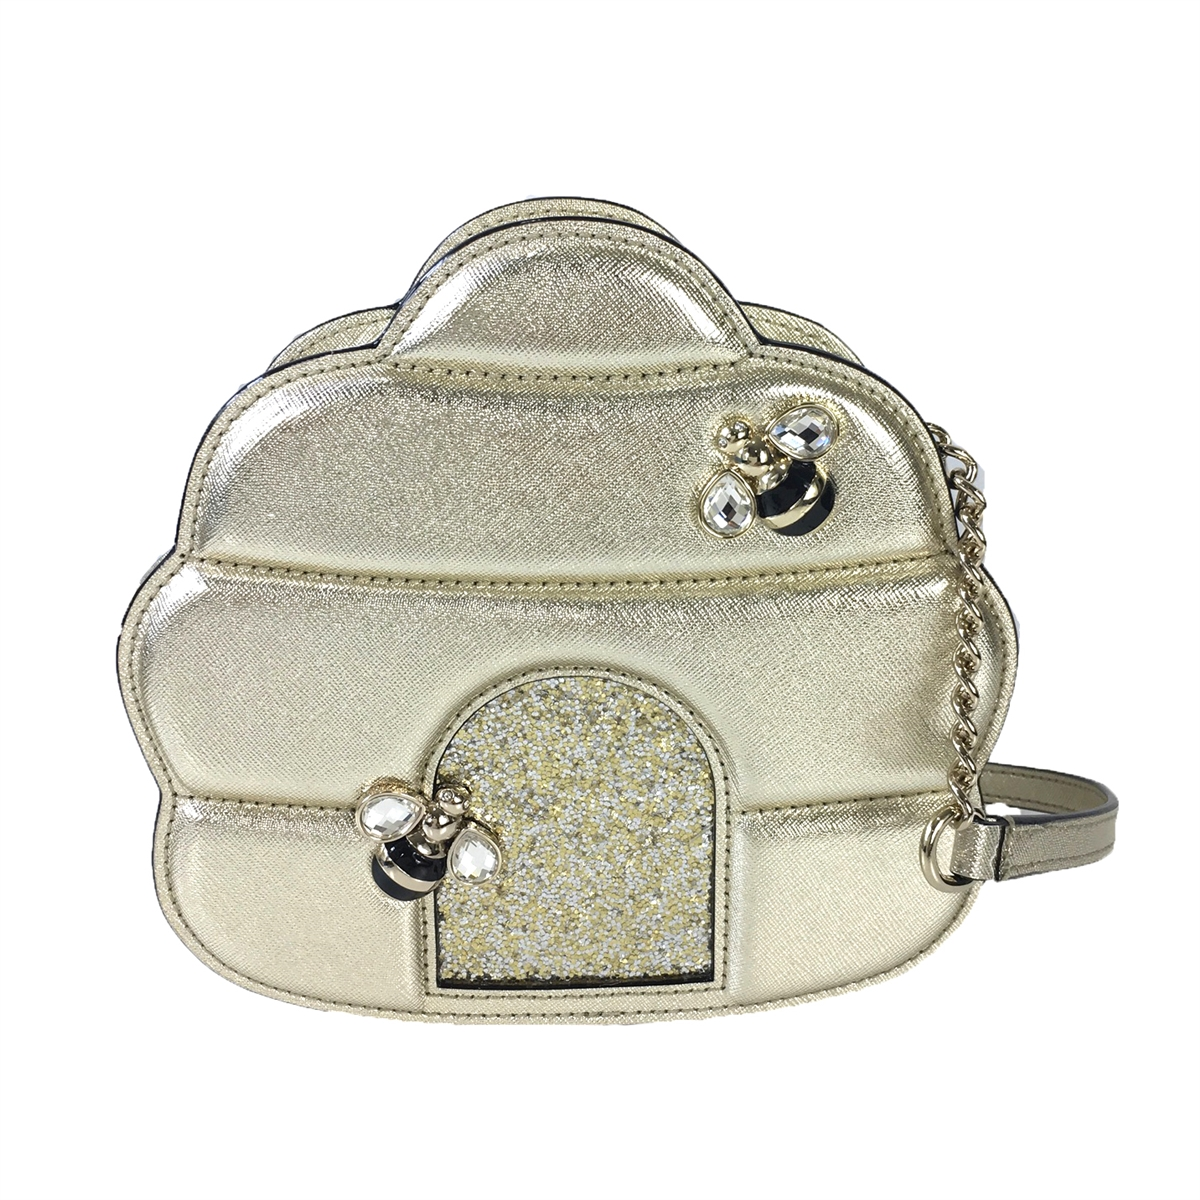 Kate Spade Beehive Leather Crossbody Bag Gold